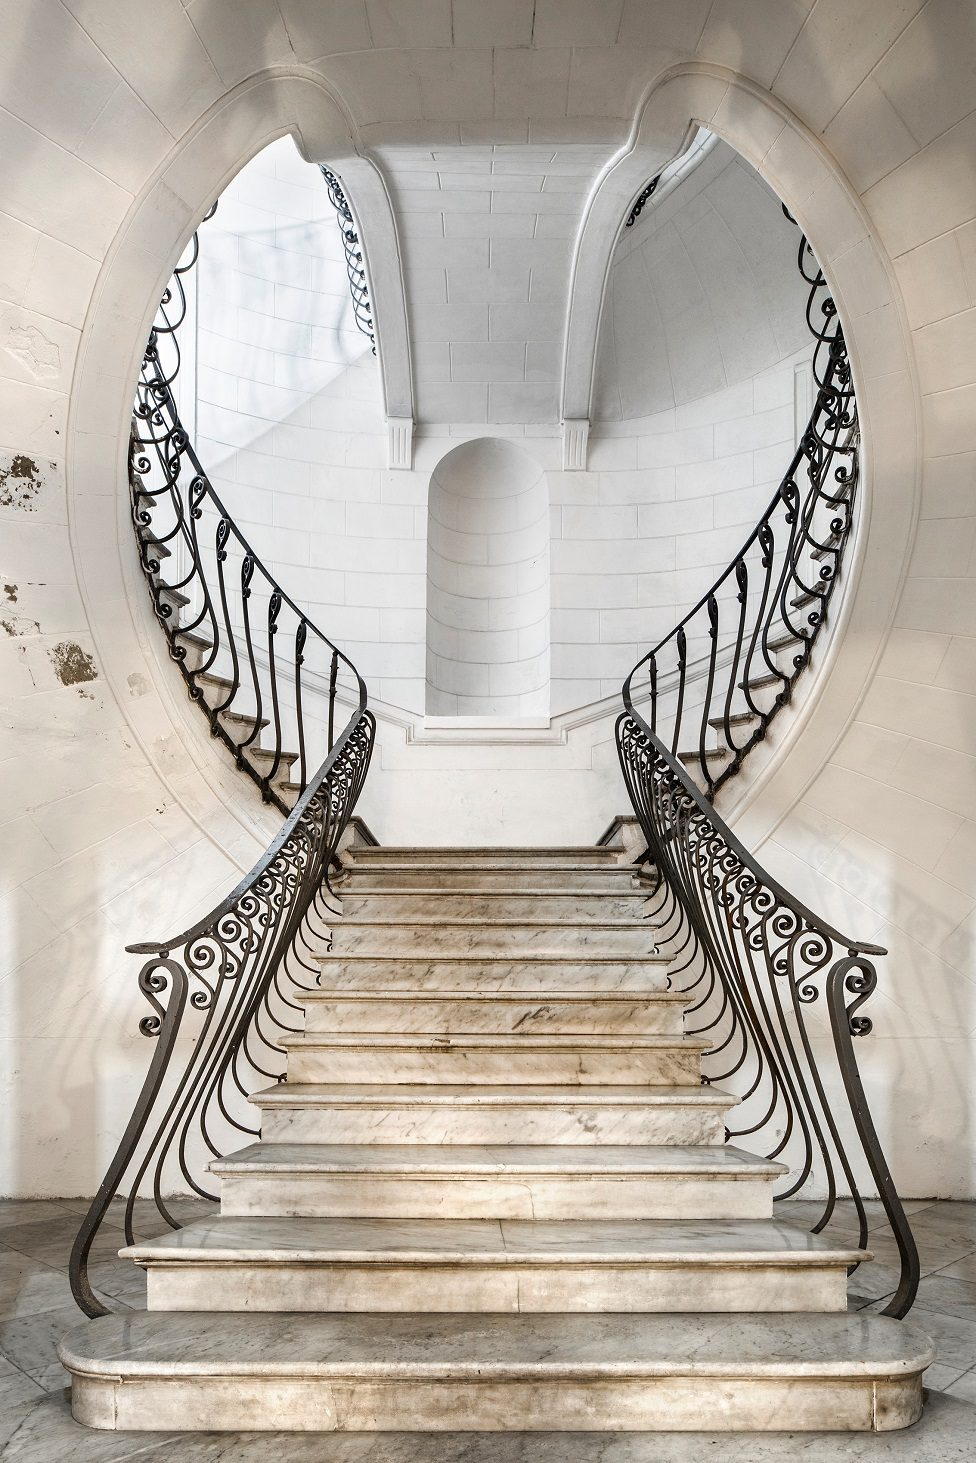 An ornate staircase of white stone and marble